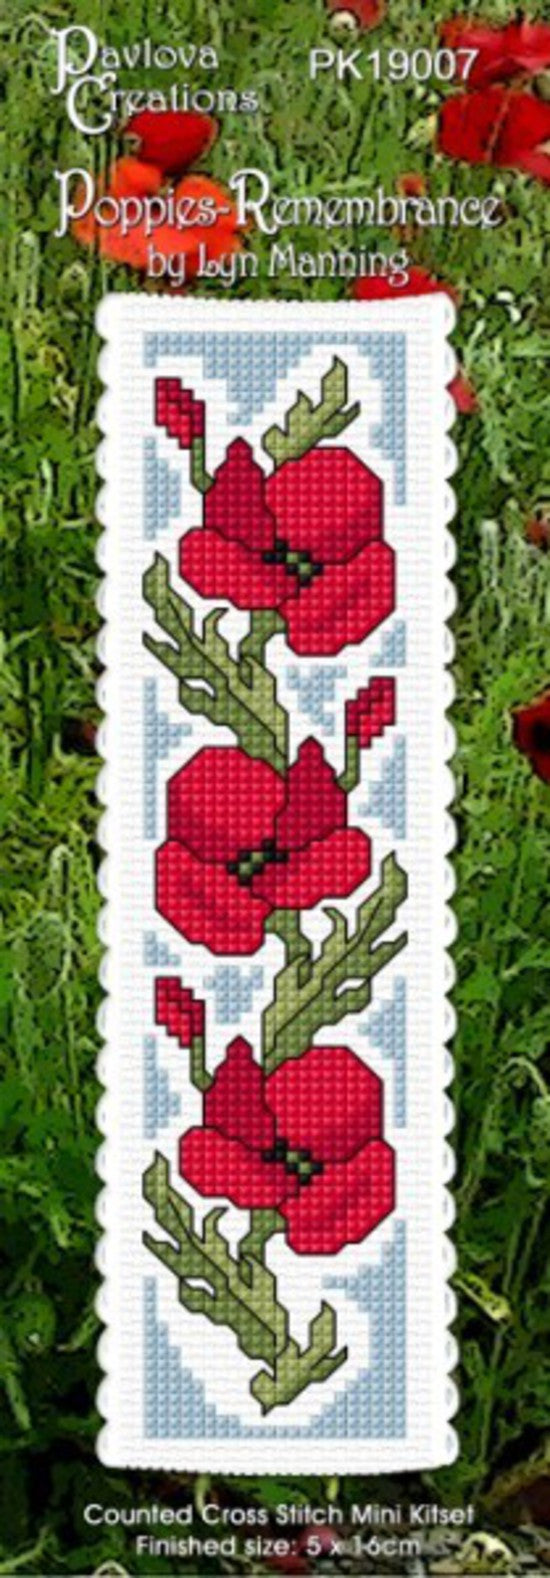 Poppies - Remembrance